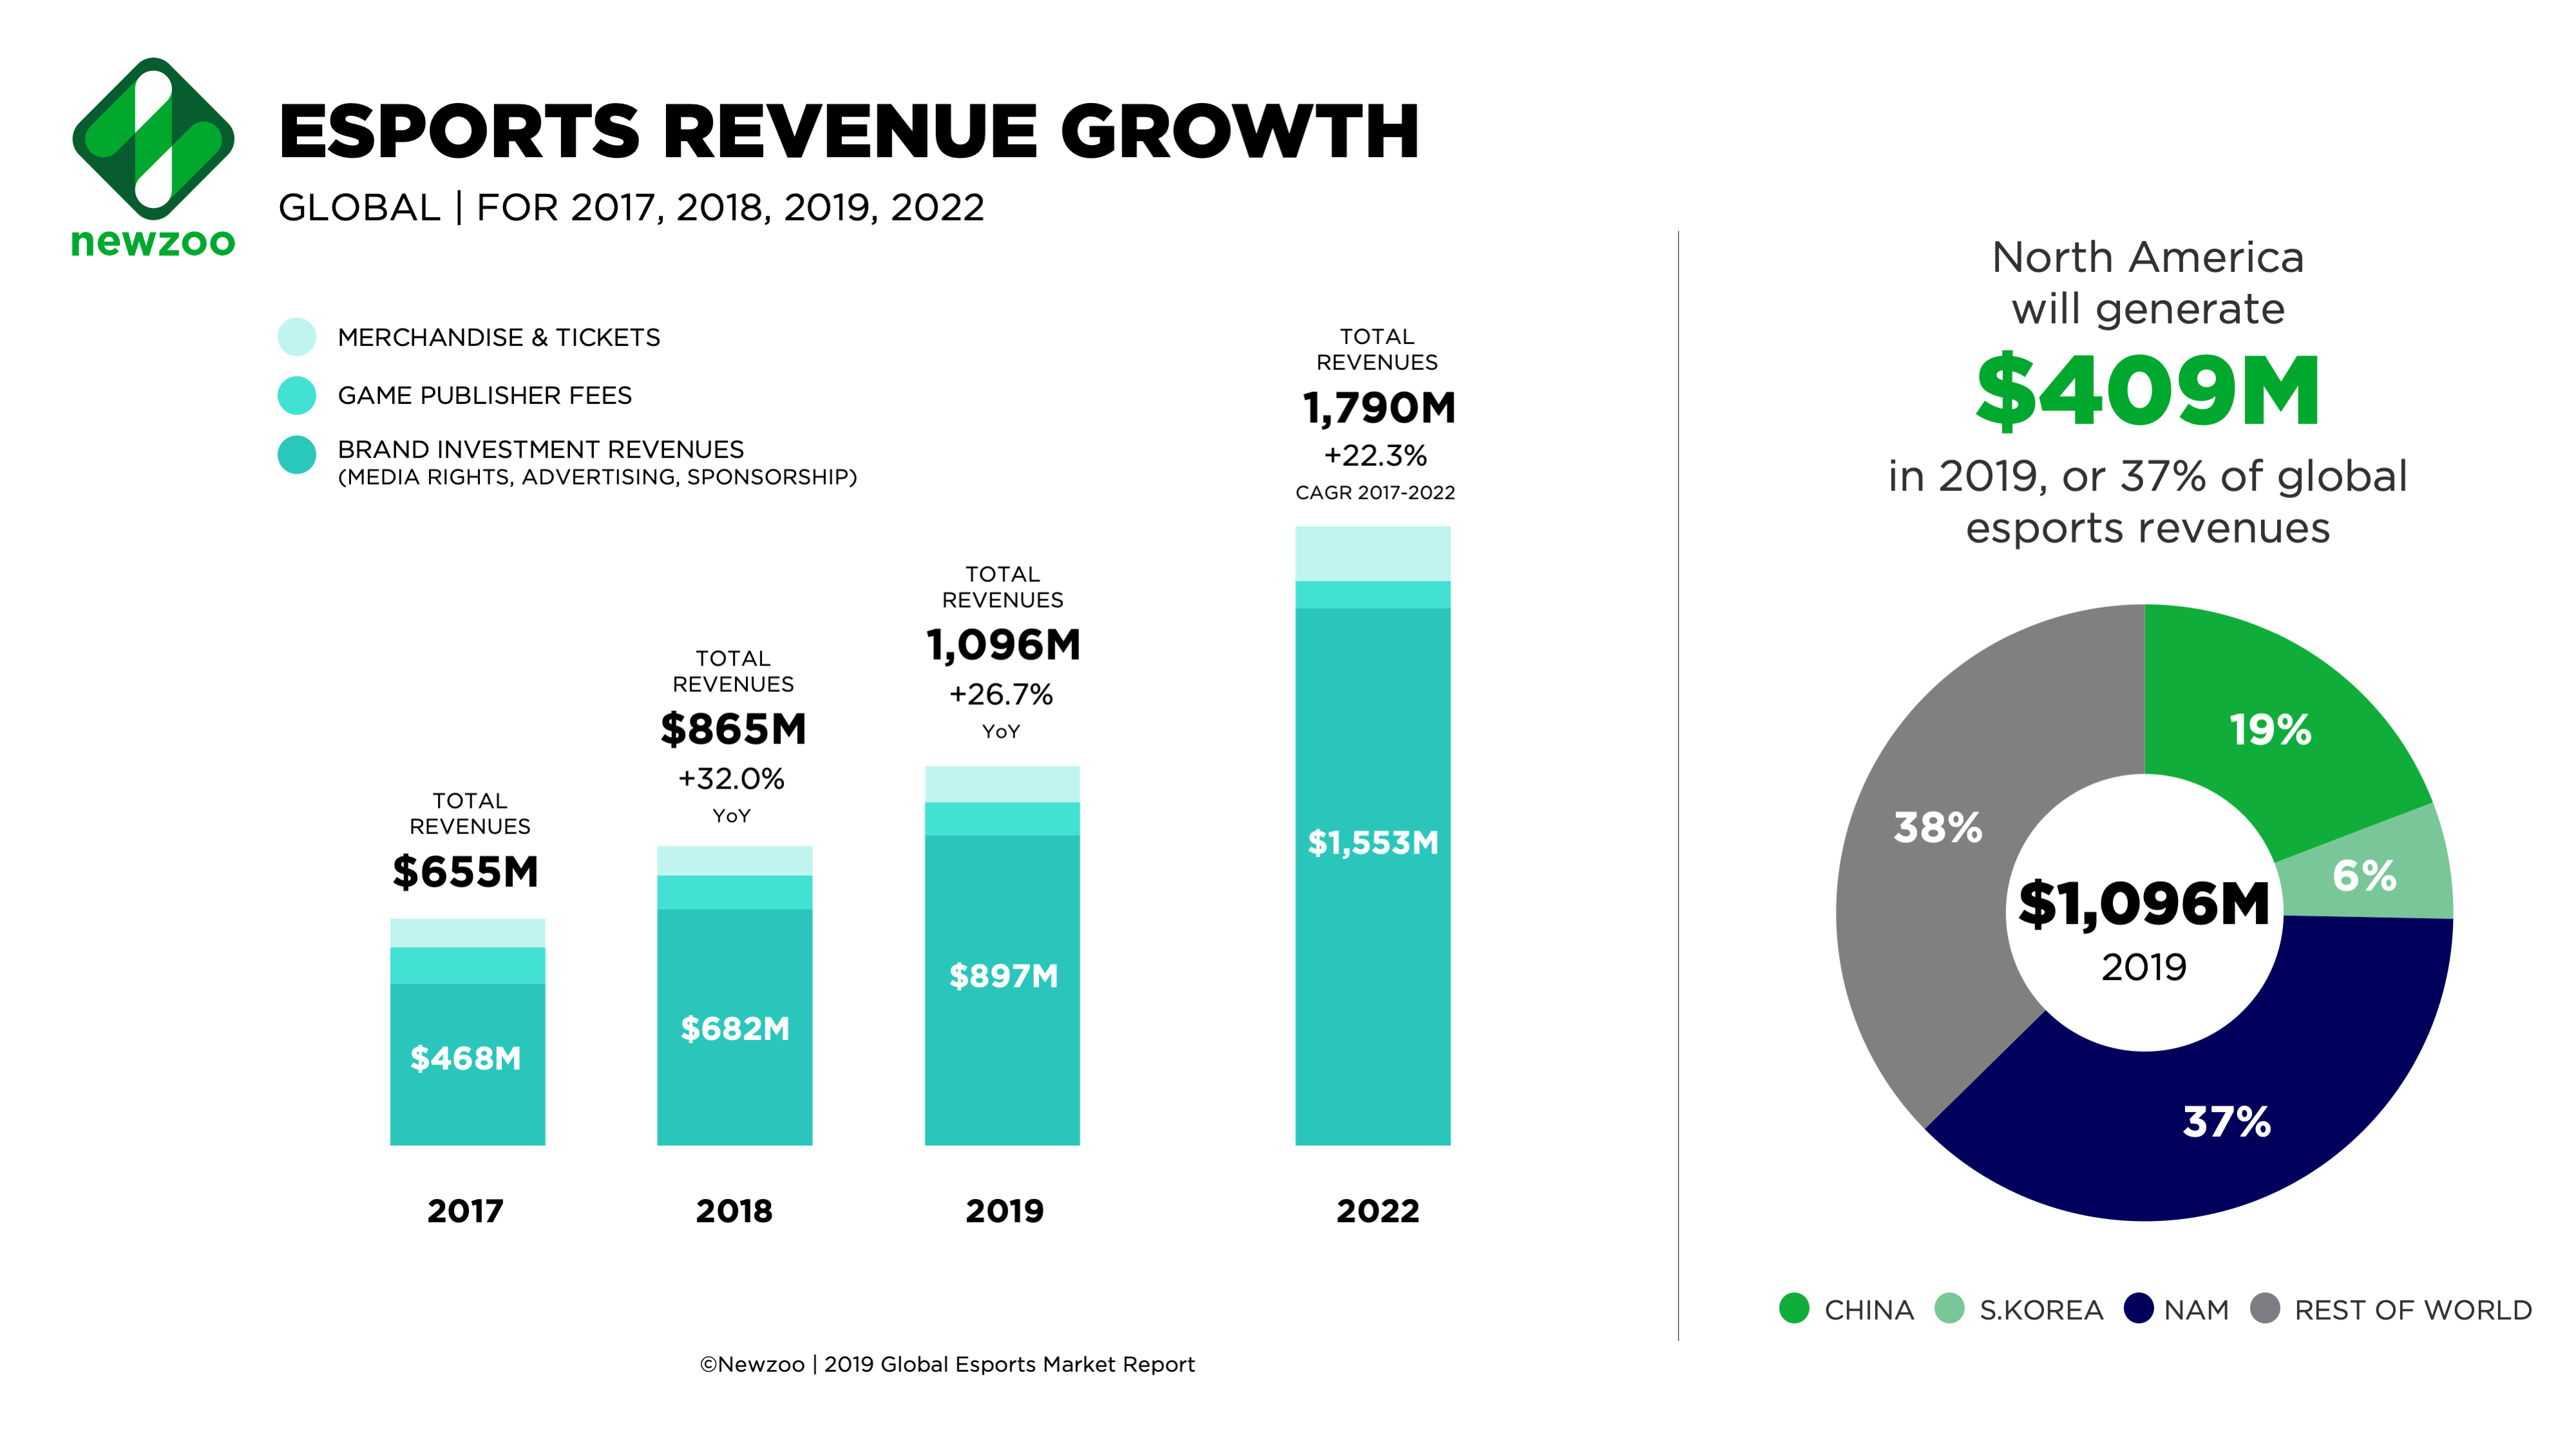 Newzoo: Global esports market will exceed $1 billion in 2019